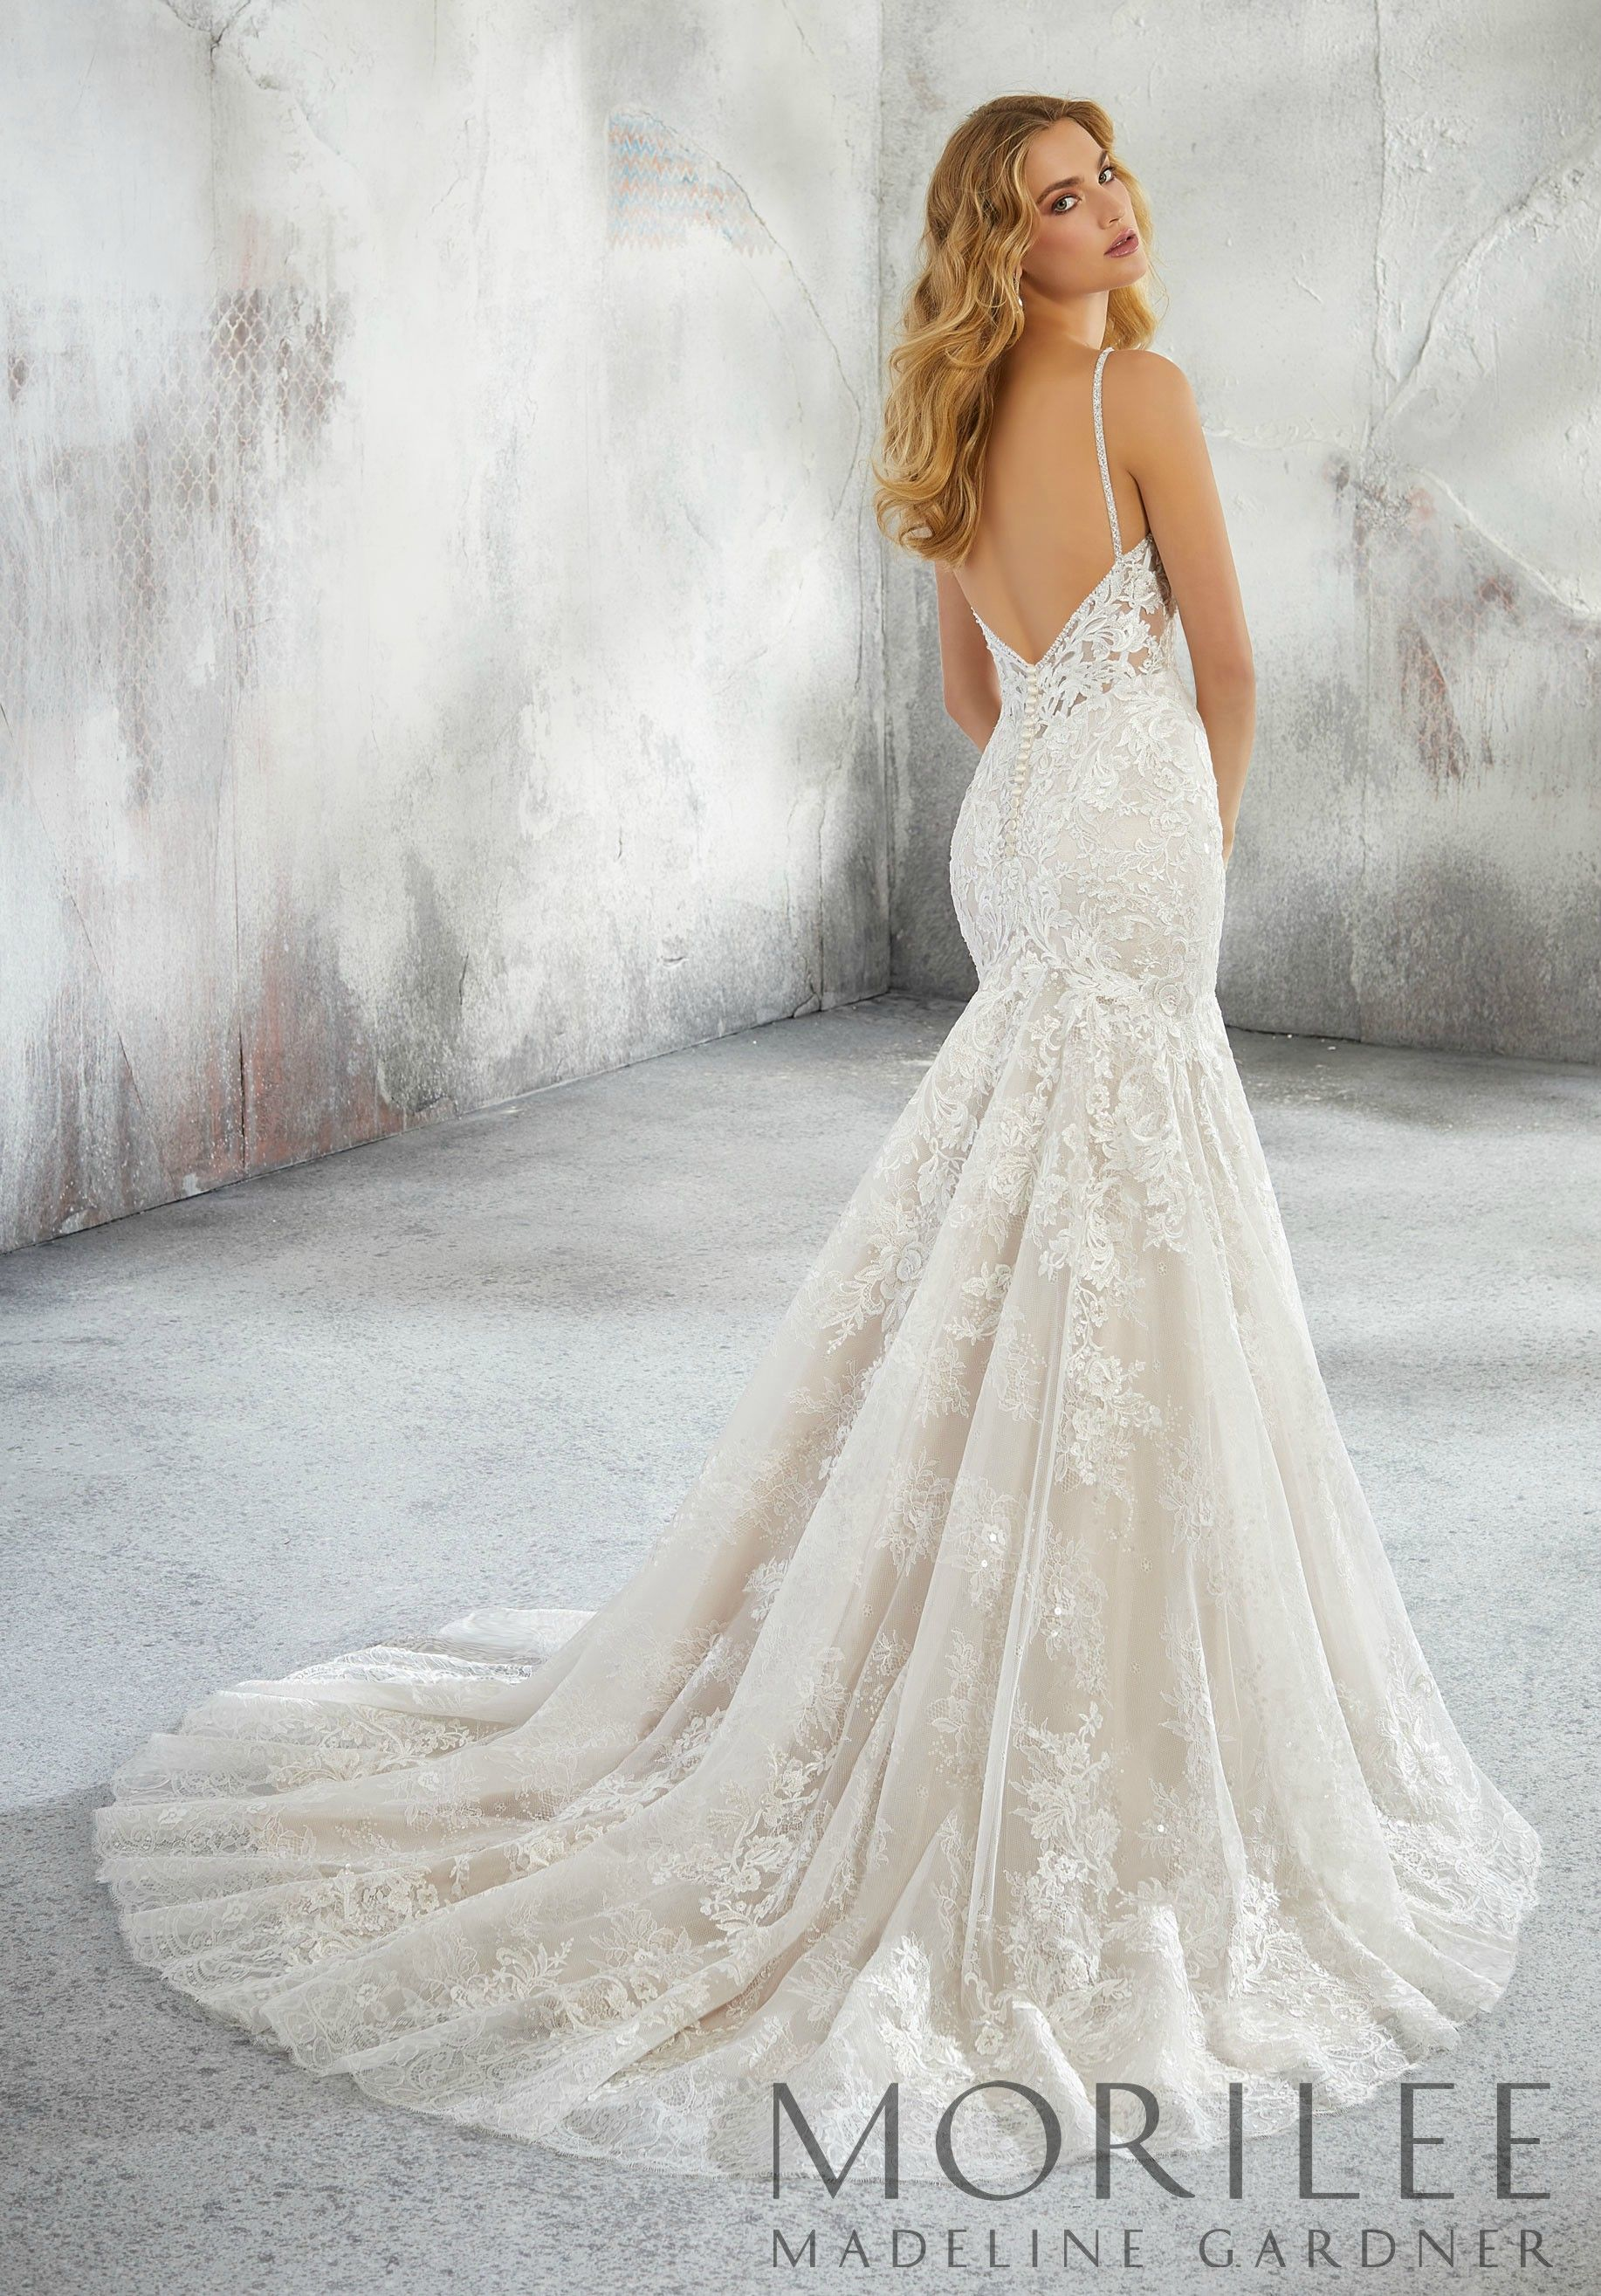 Morilee  Madeline Gardner Lexi Style   Classic Chantilly Lace